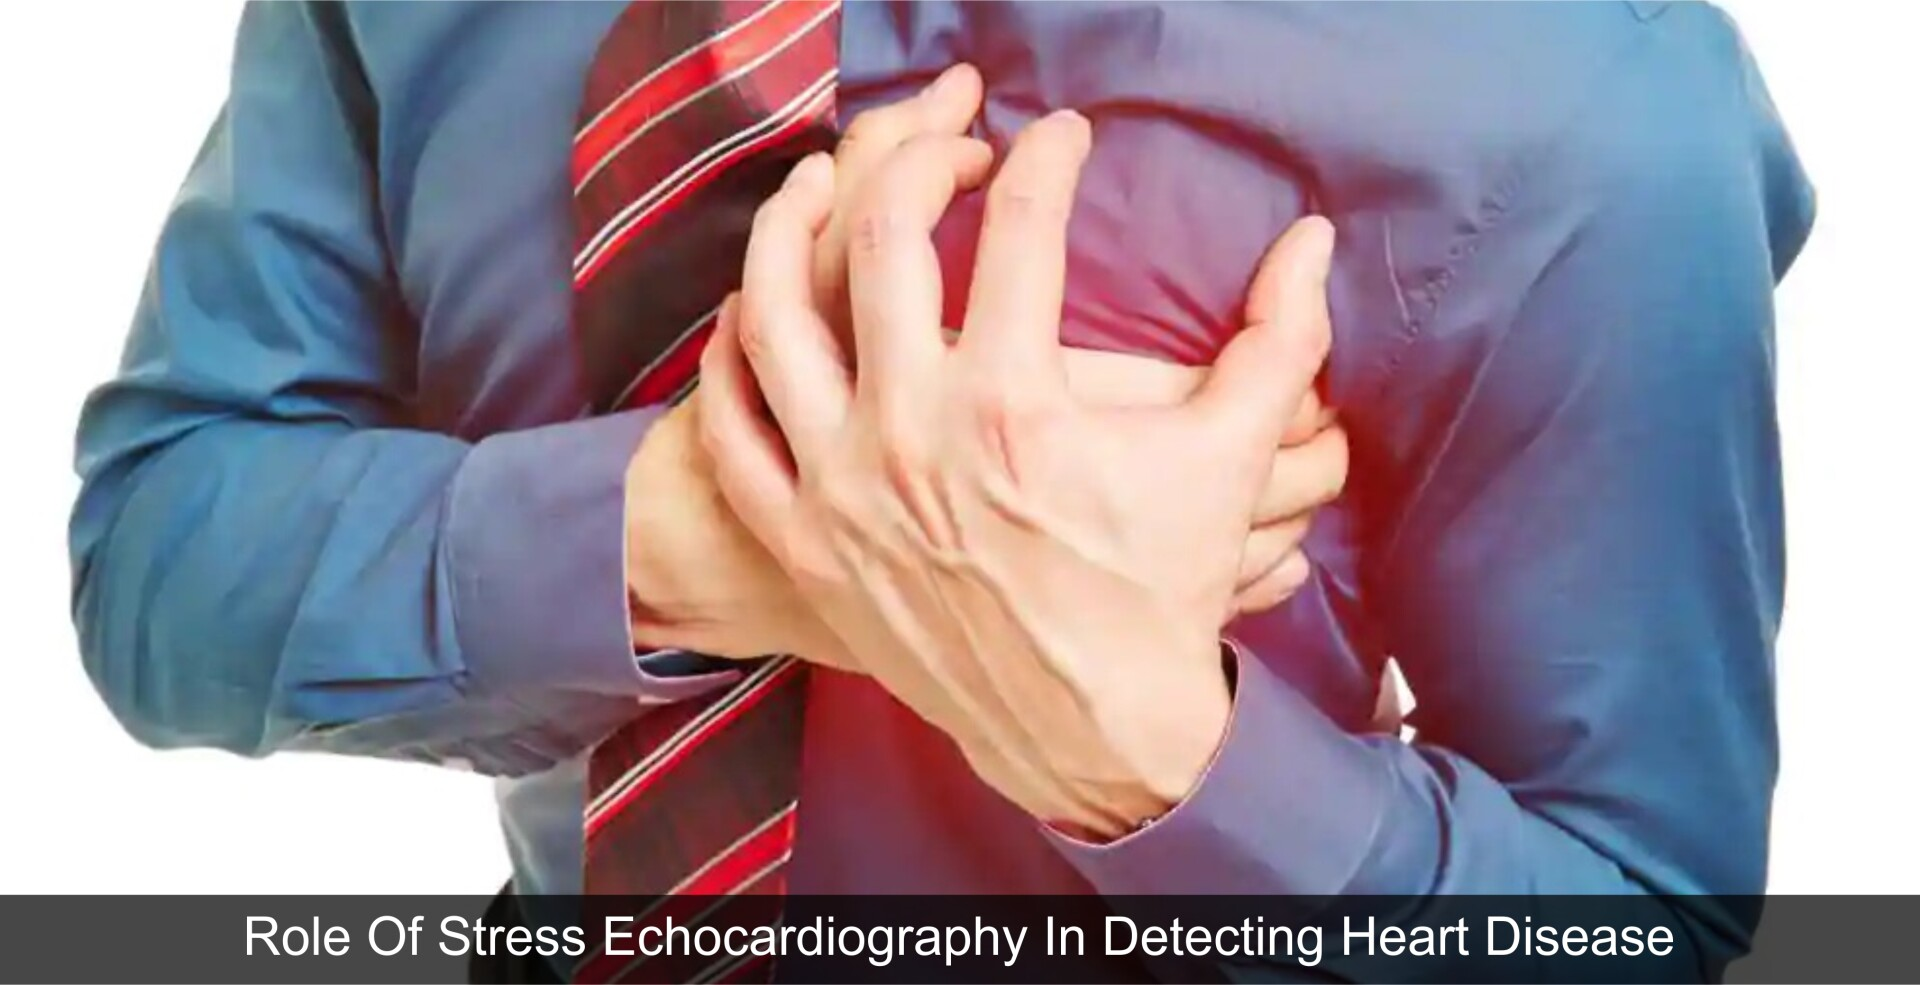 role of stress echocardiography in detecting heart disease